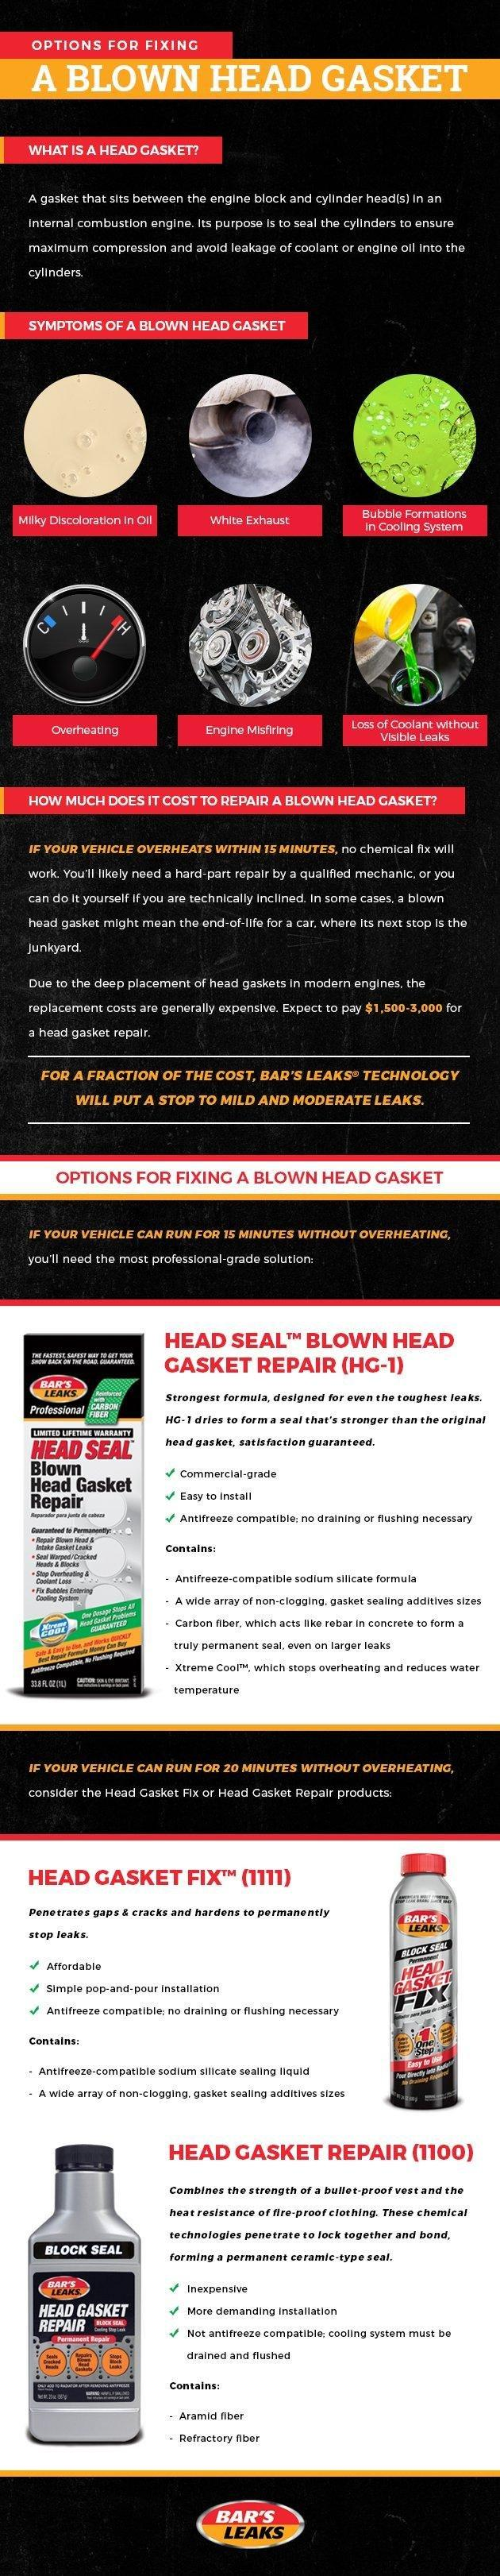 Fixing Your Blown Or Leaking Head Gasket In One Affordable Easy Step